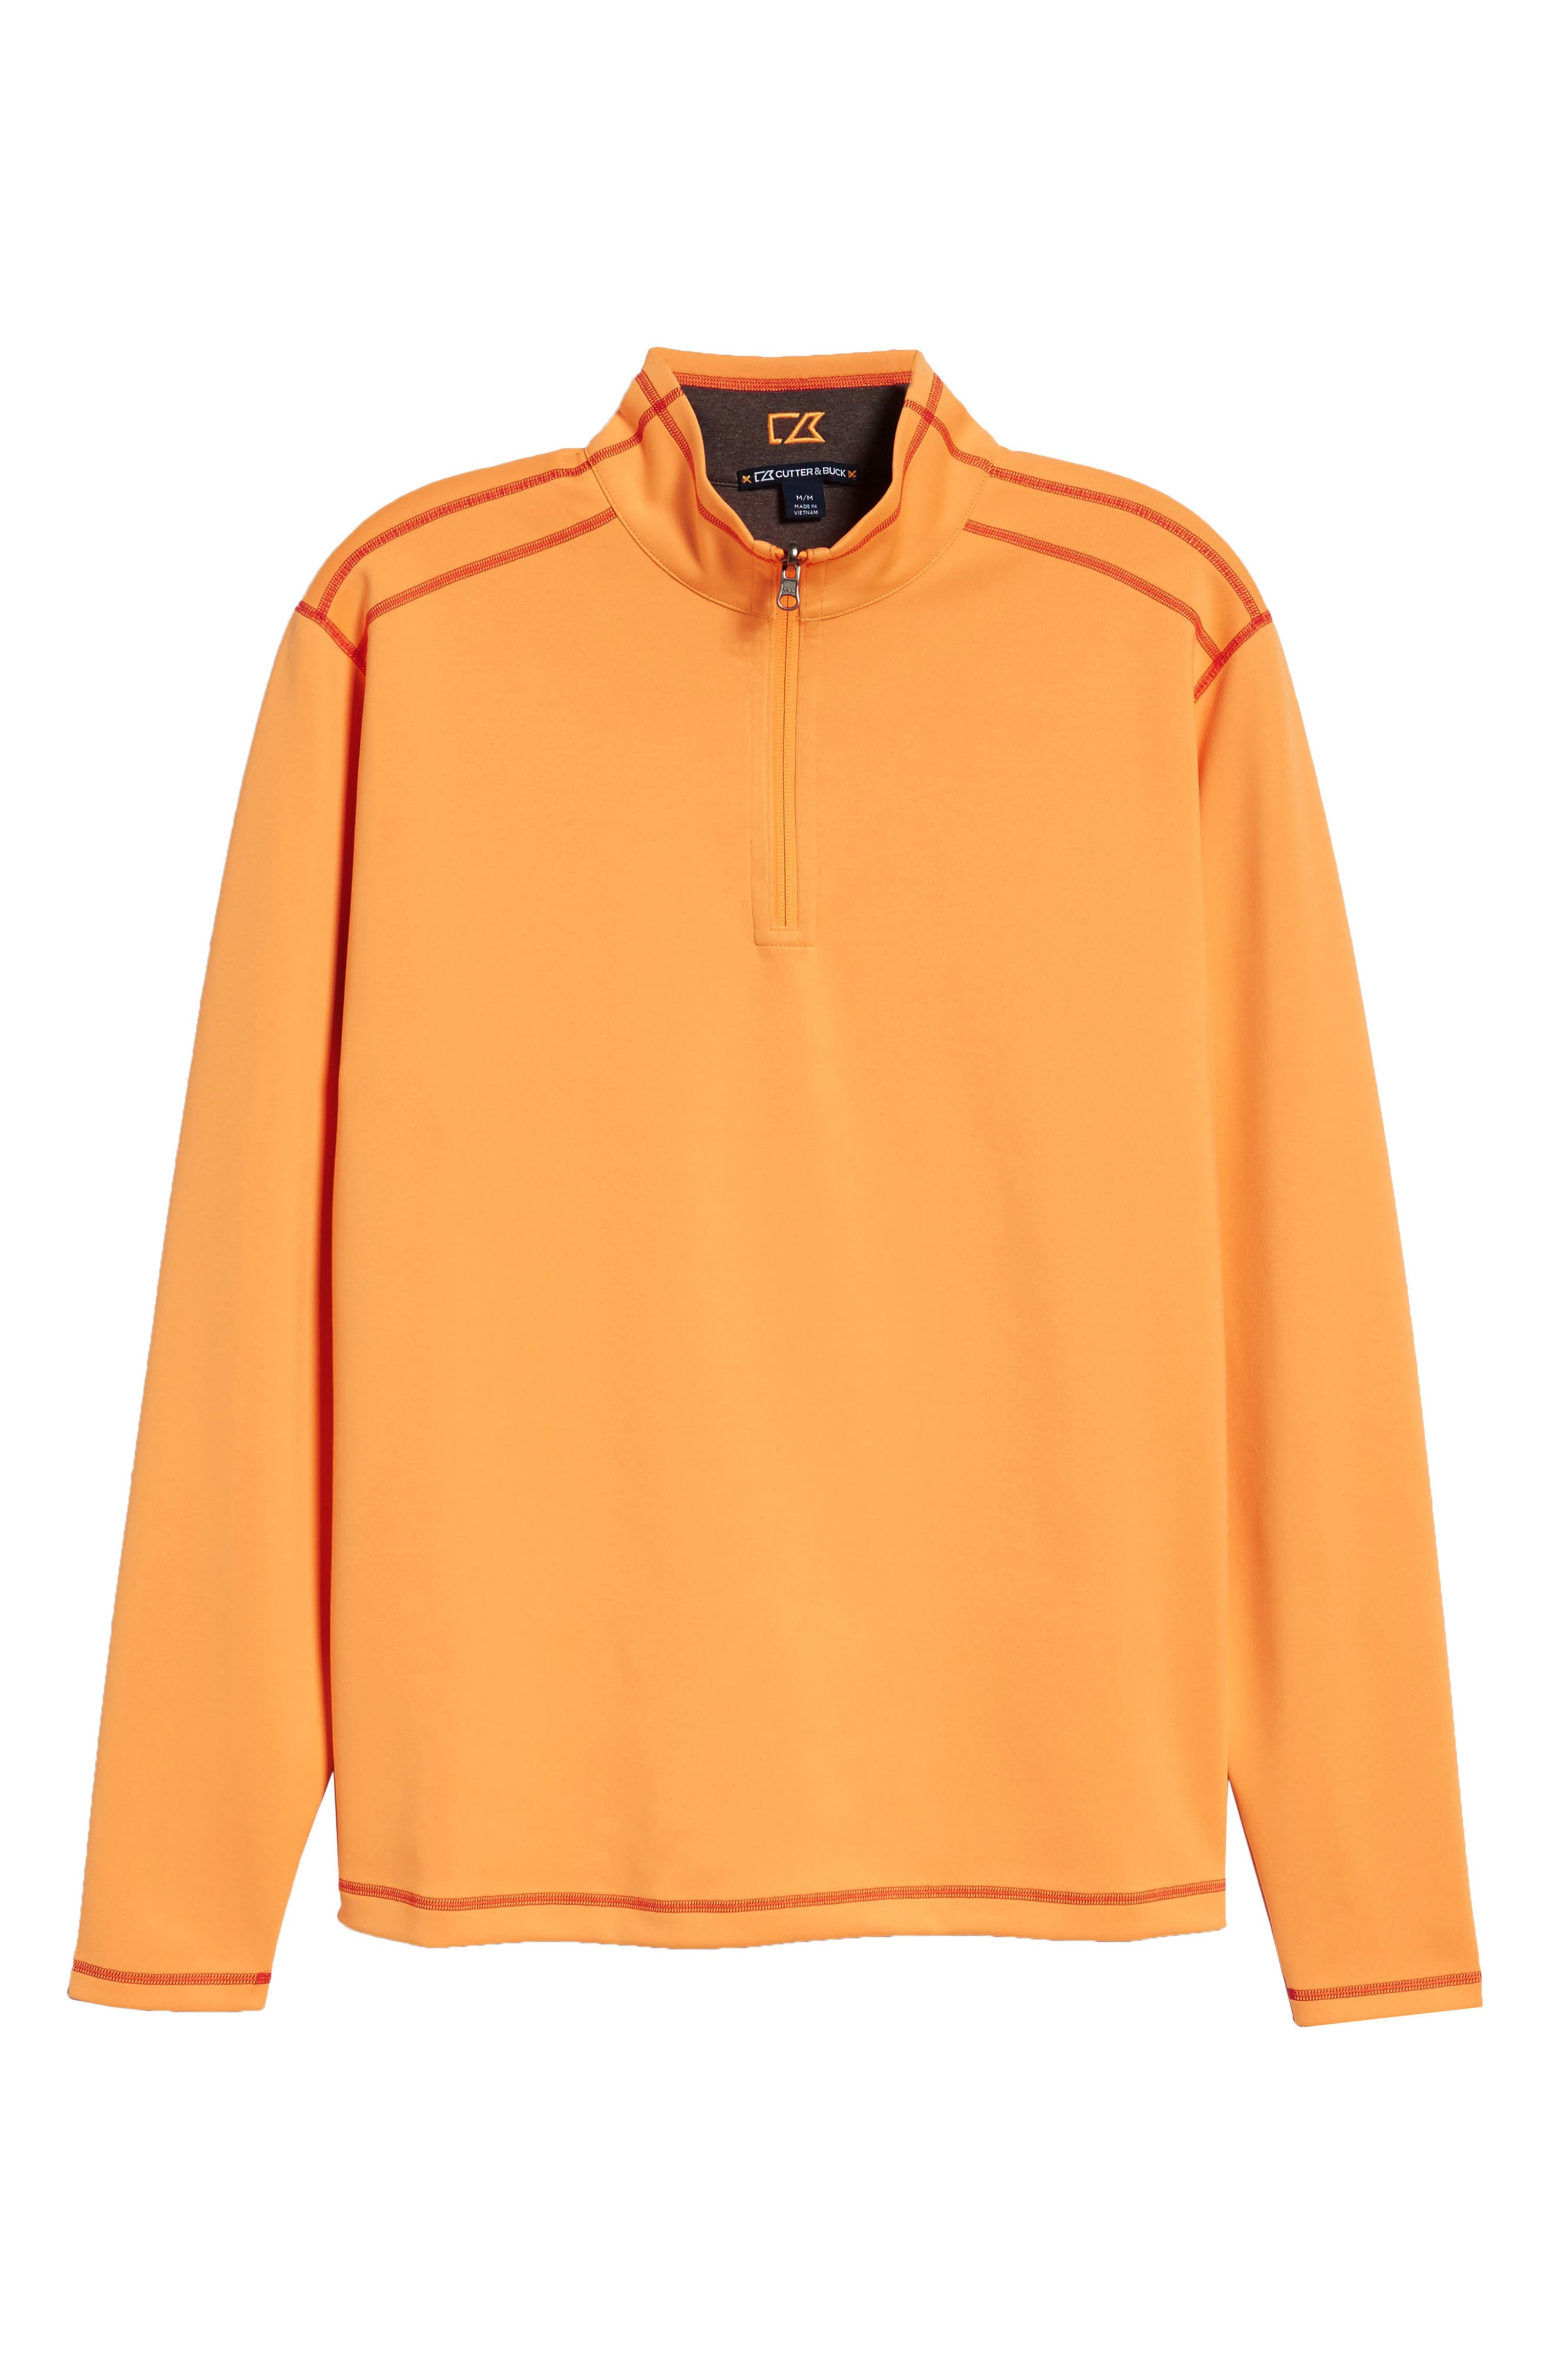 Evergreen Classic Fit DryTec Reversible Half Zip Pullover,                             Alternate thumbnail 6, color,                             Clarity